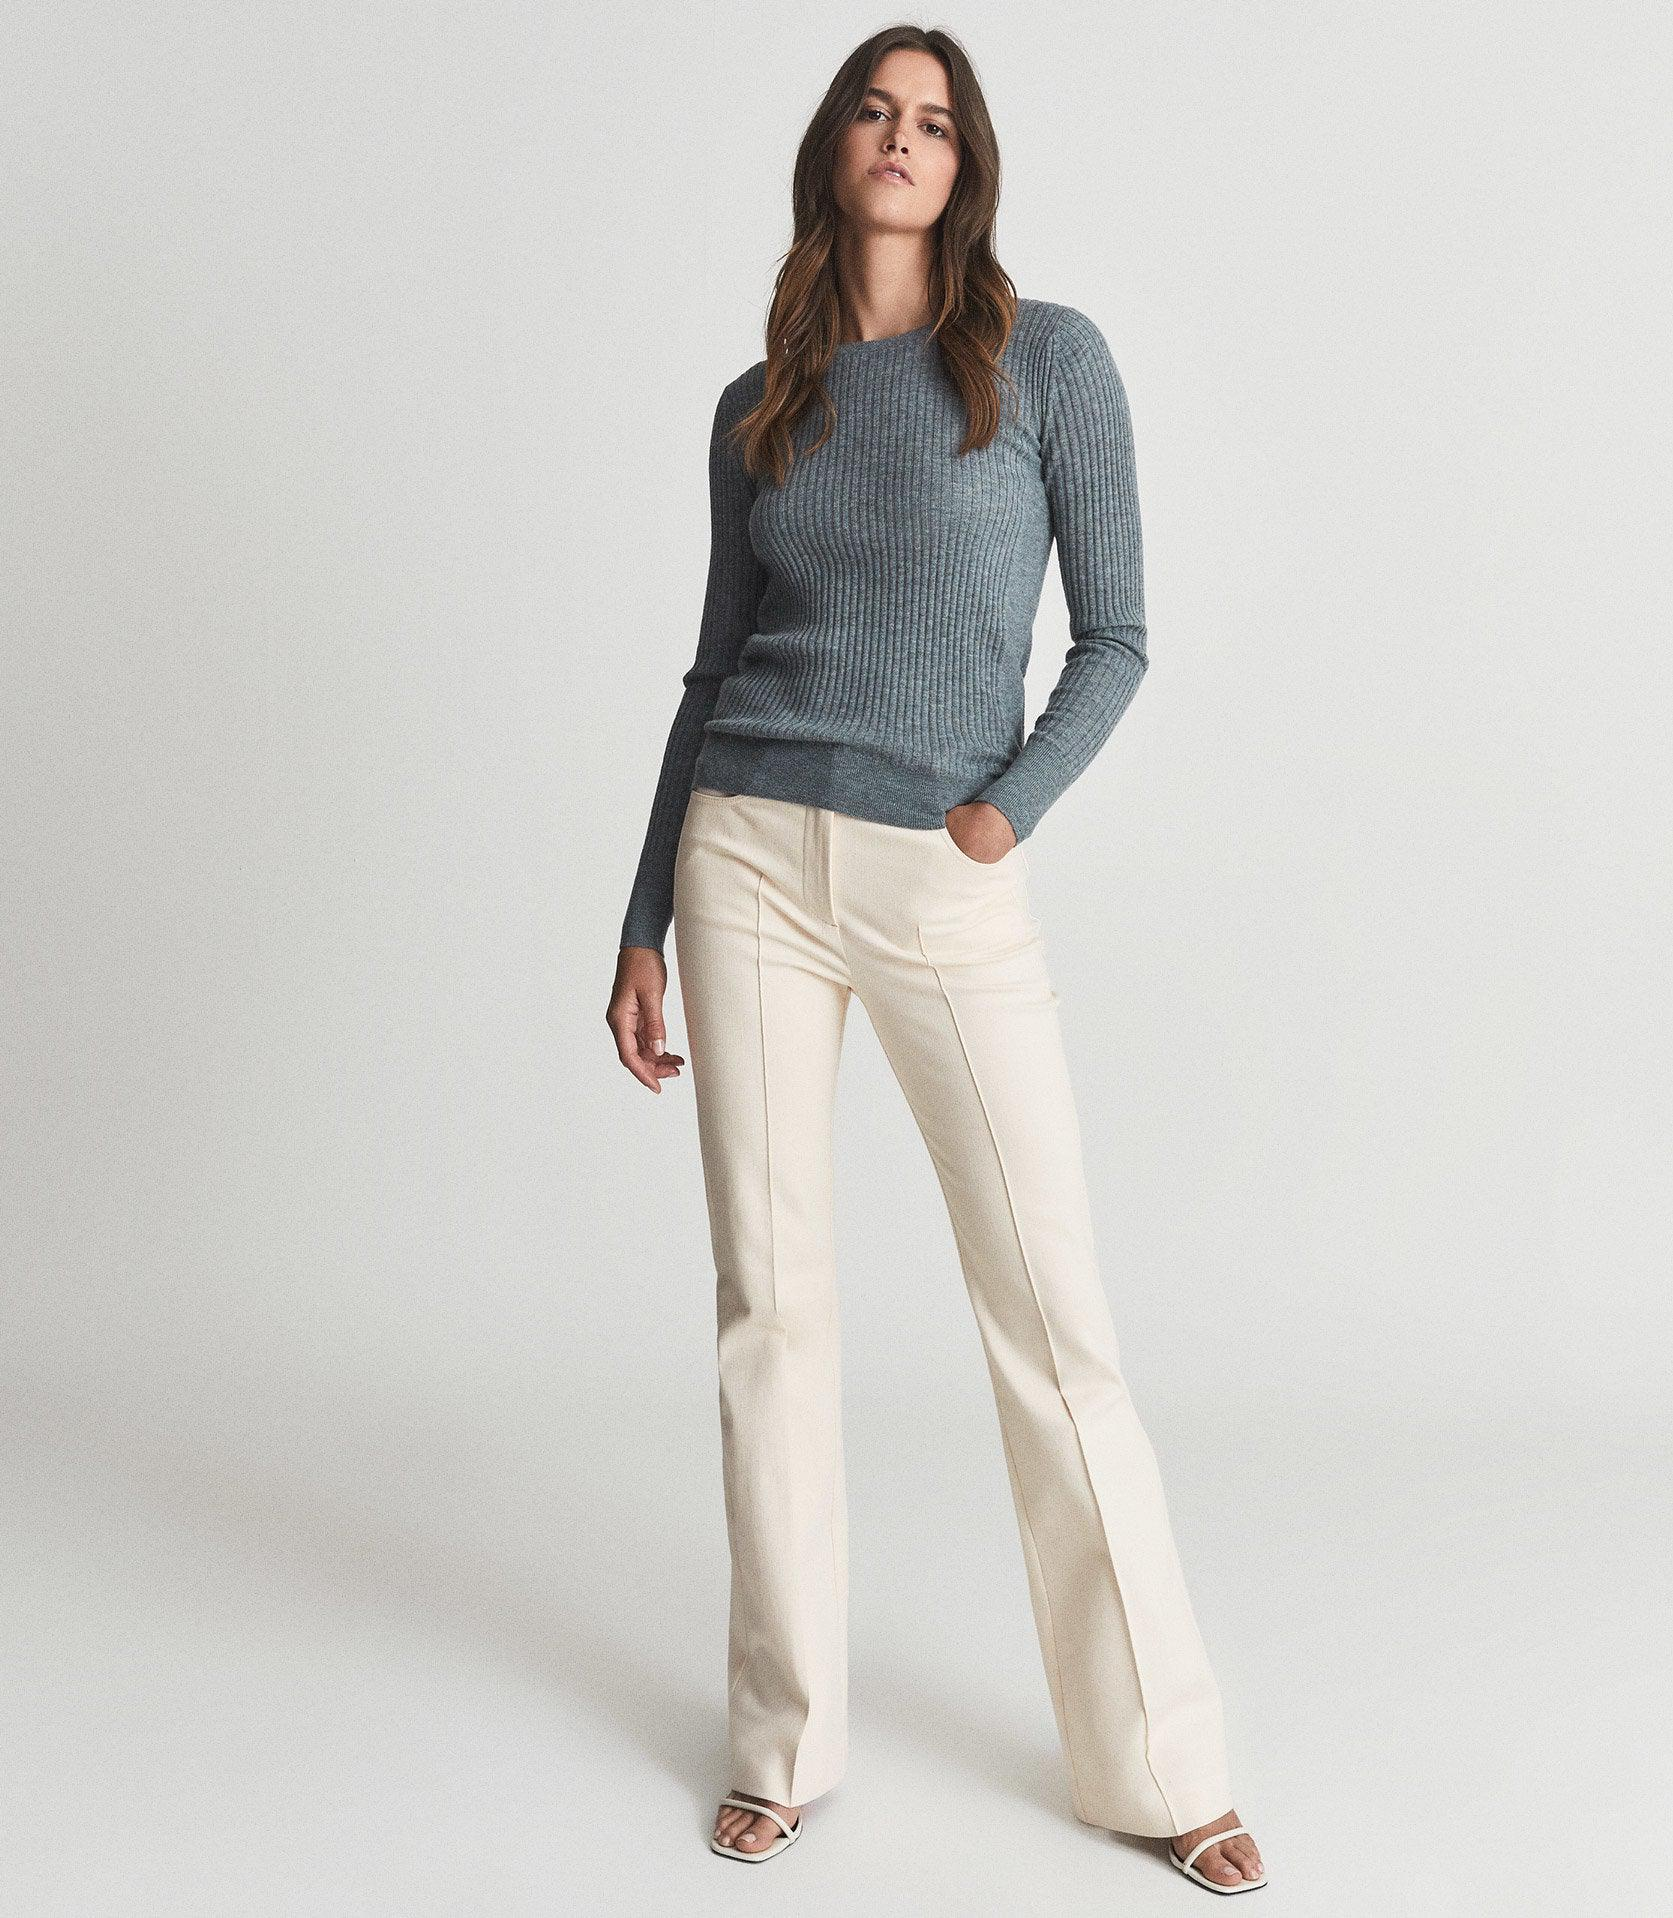 MAEVE - CREW NECK KNITTED TOP